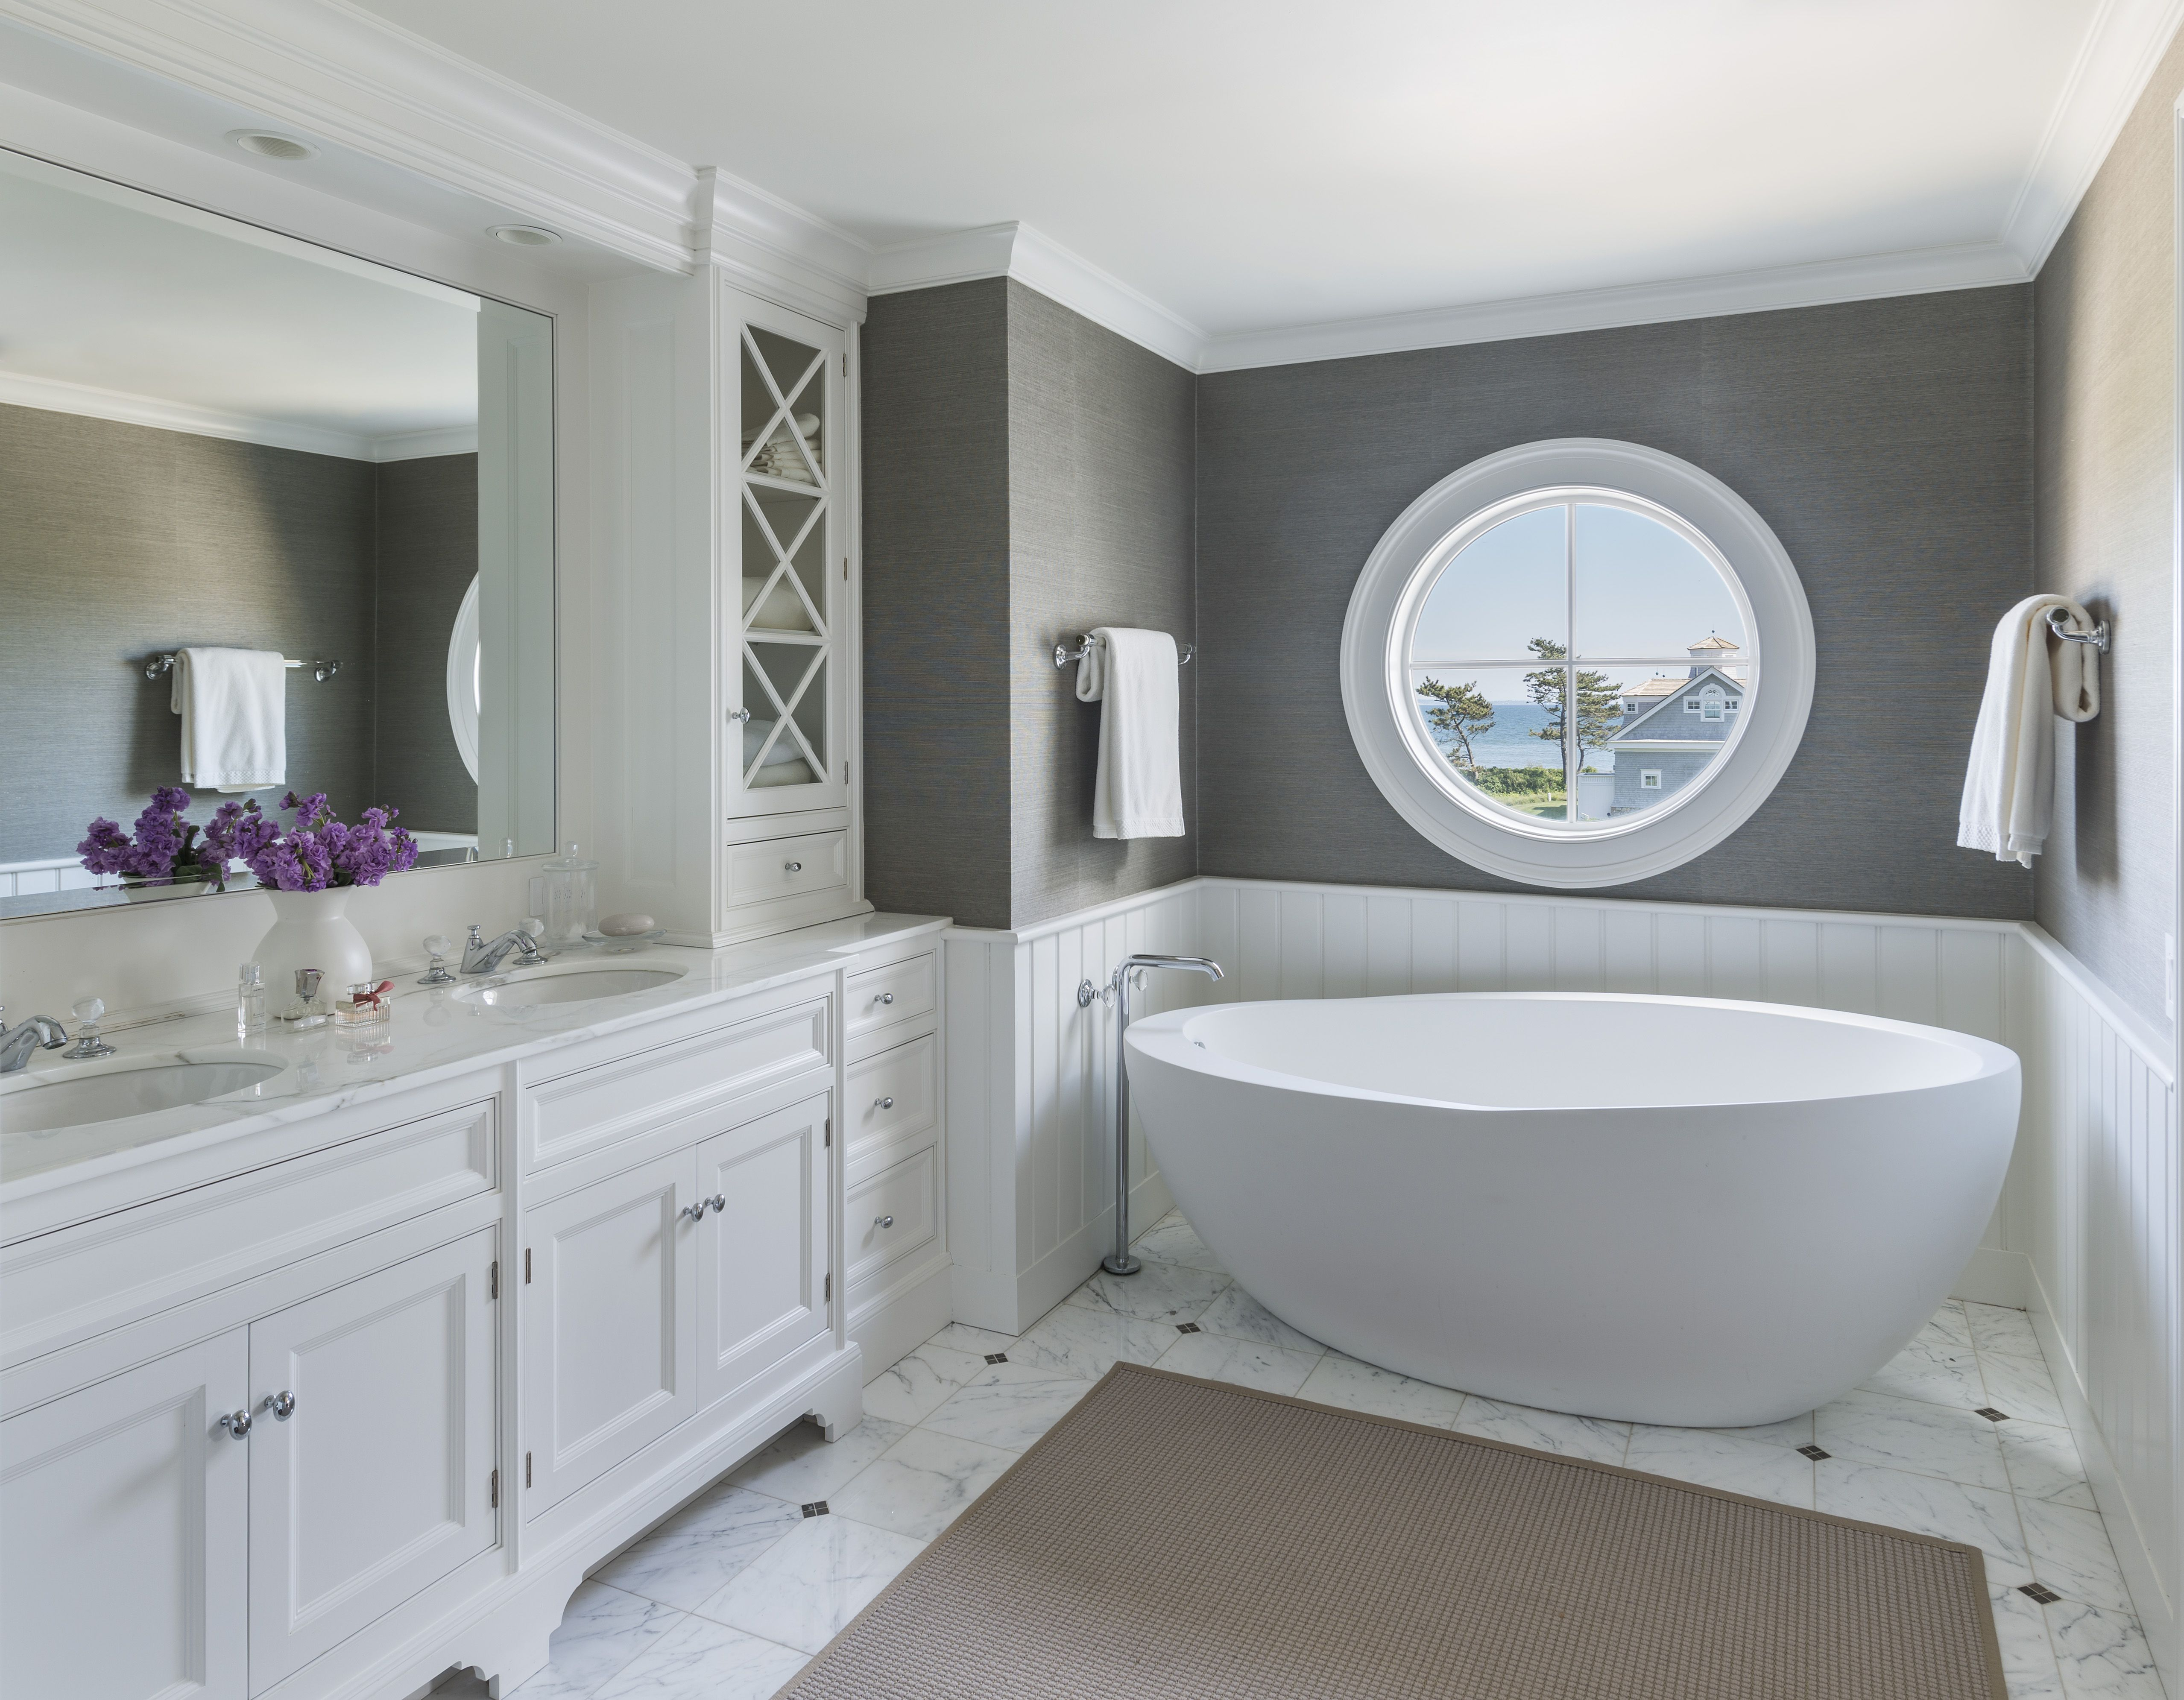 Best Kitchen Gallery: Master Bathroom Free Standing Tub Gray Grasscloth Wallpaper of New England Bathrooms Designs  on rachelxblog.com